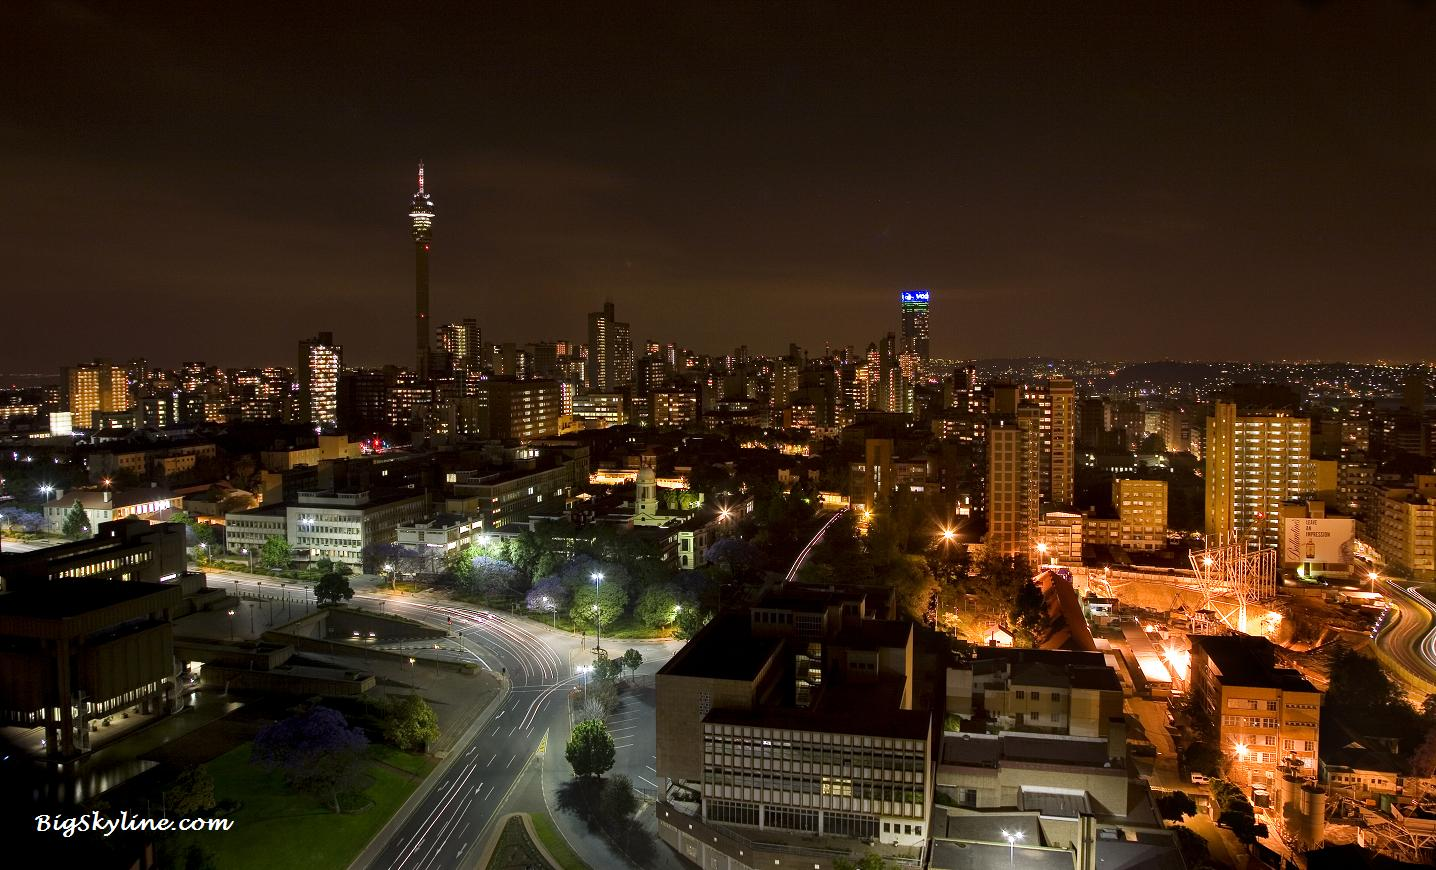 skyline-Johannesburg-night-zzz.jpg